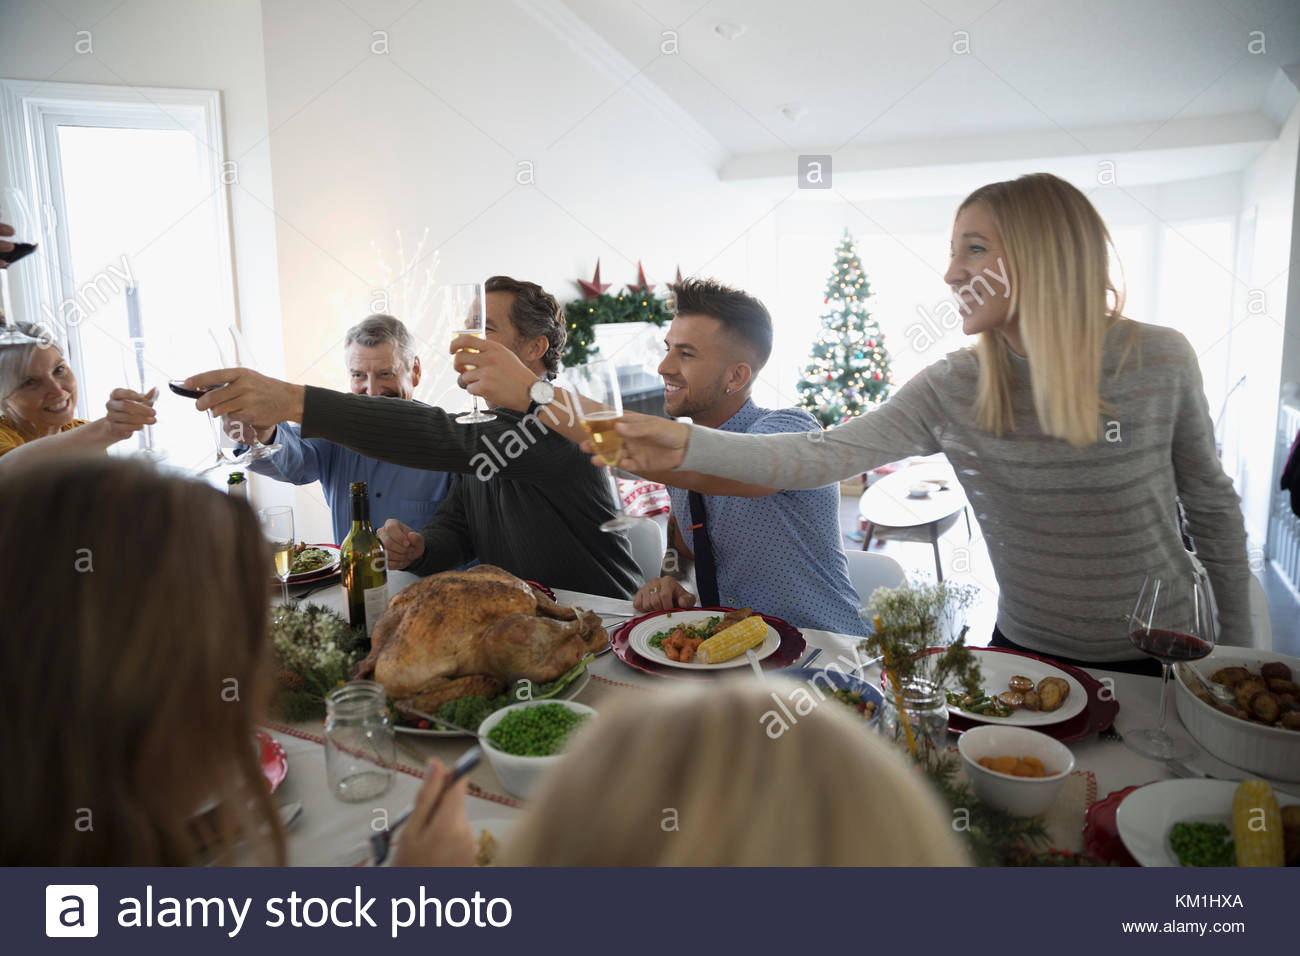 Family and friends toasting champagne glasses at turkey Christmas dinner table - Stock Image